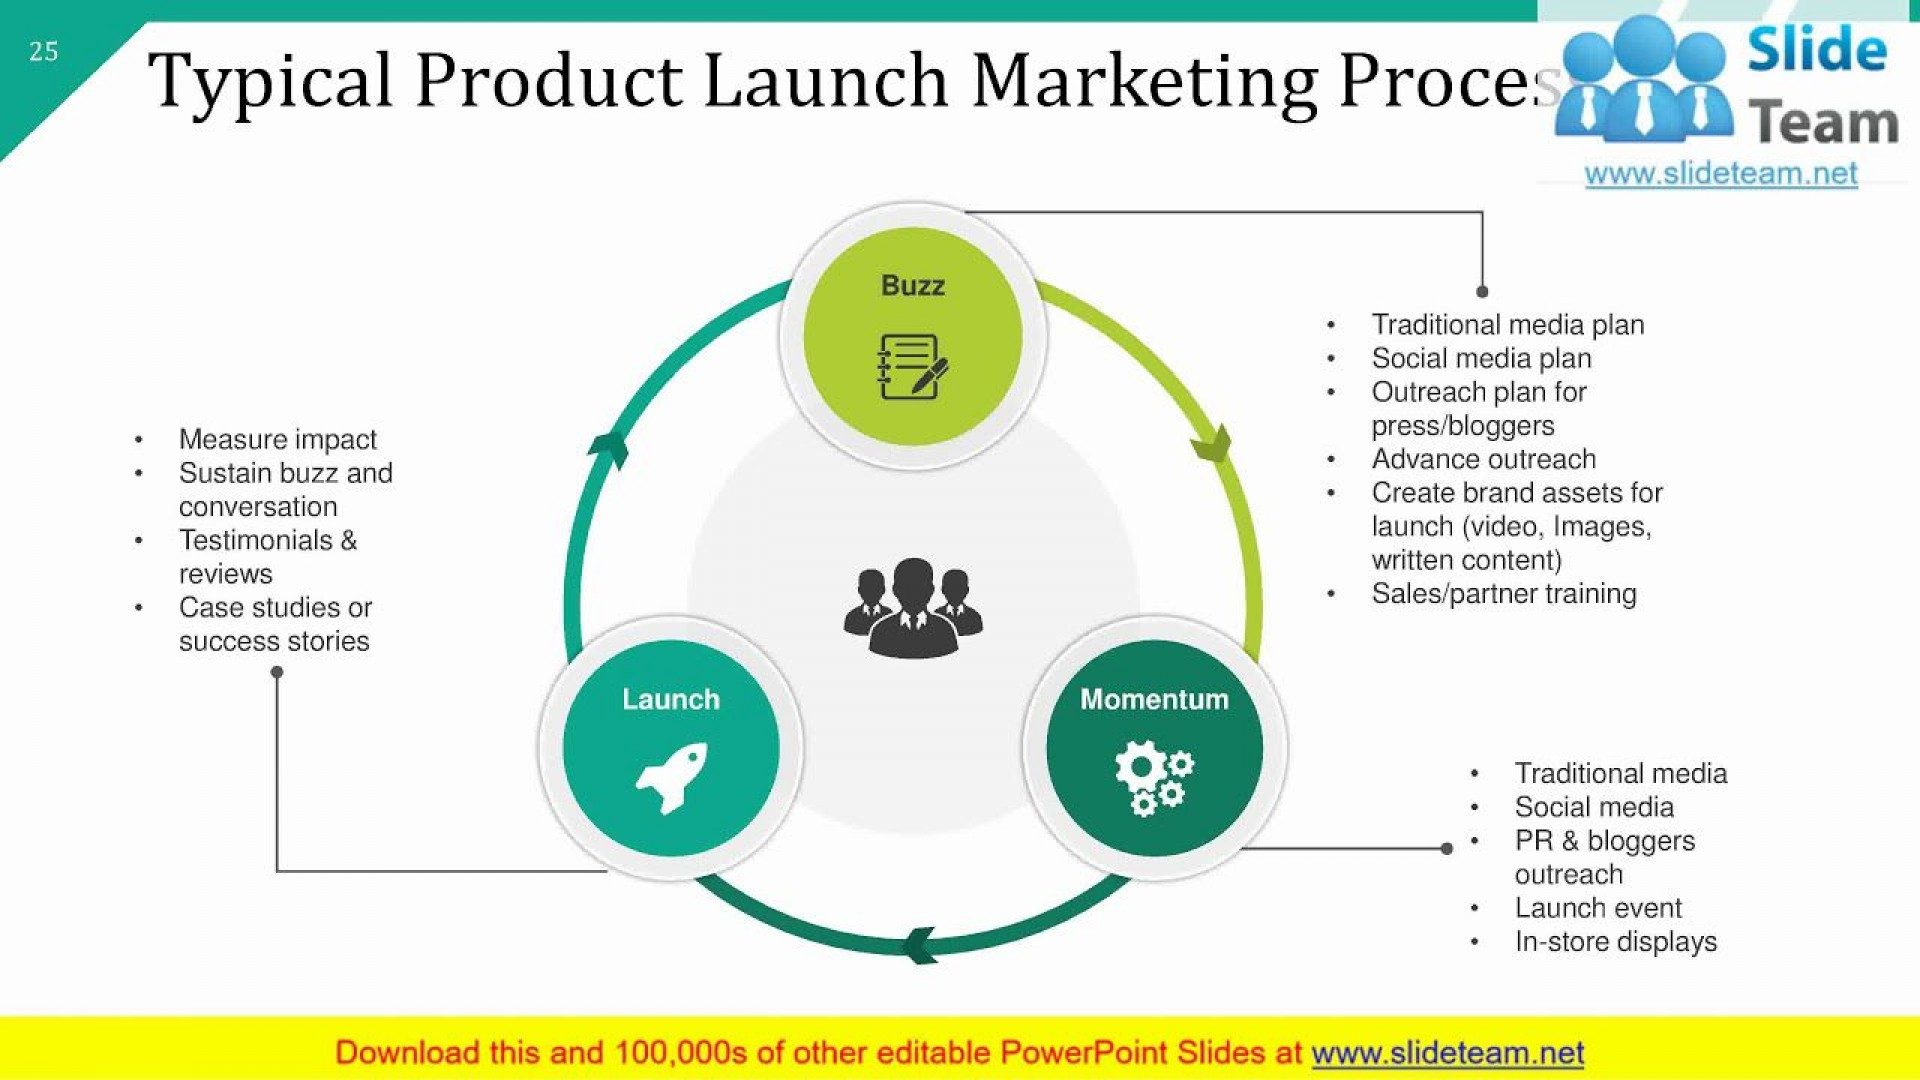 001 Striking Product Launch Marketing Plan Template Photo  Sample New Example Ppt1920